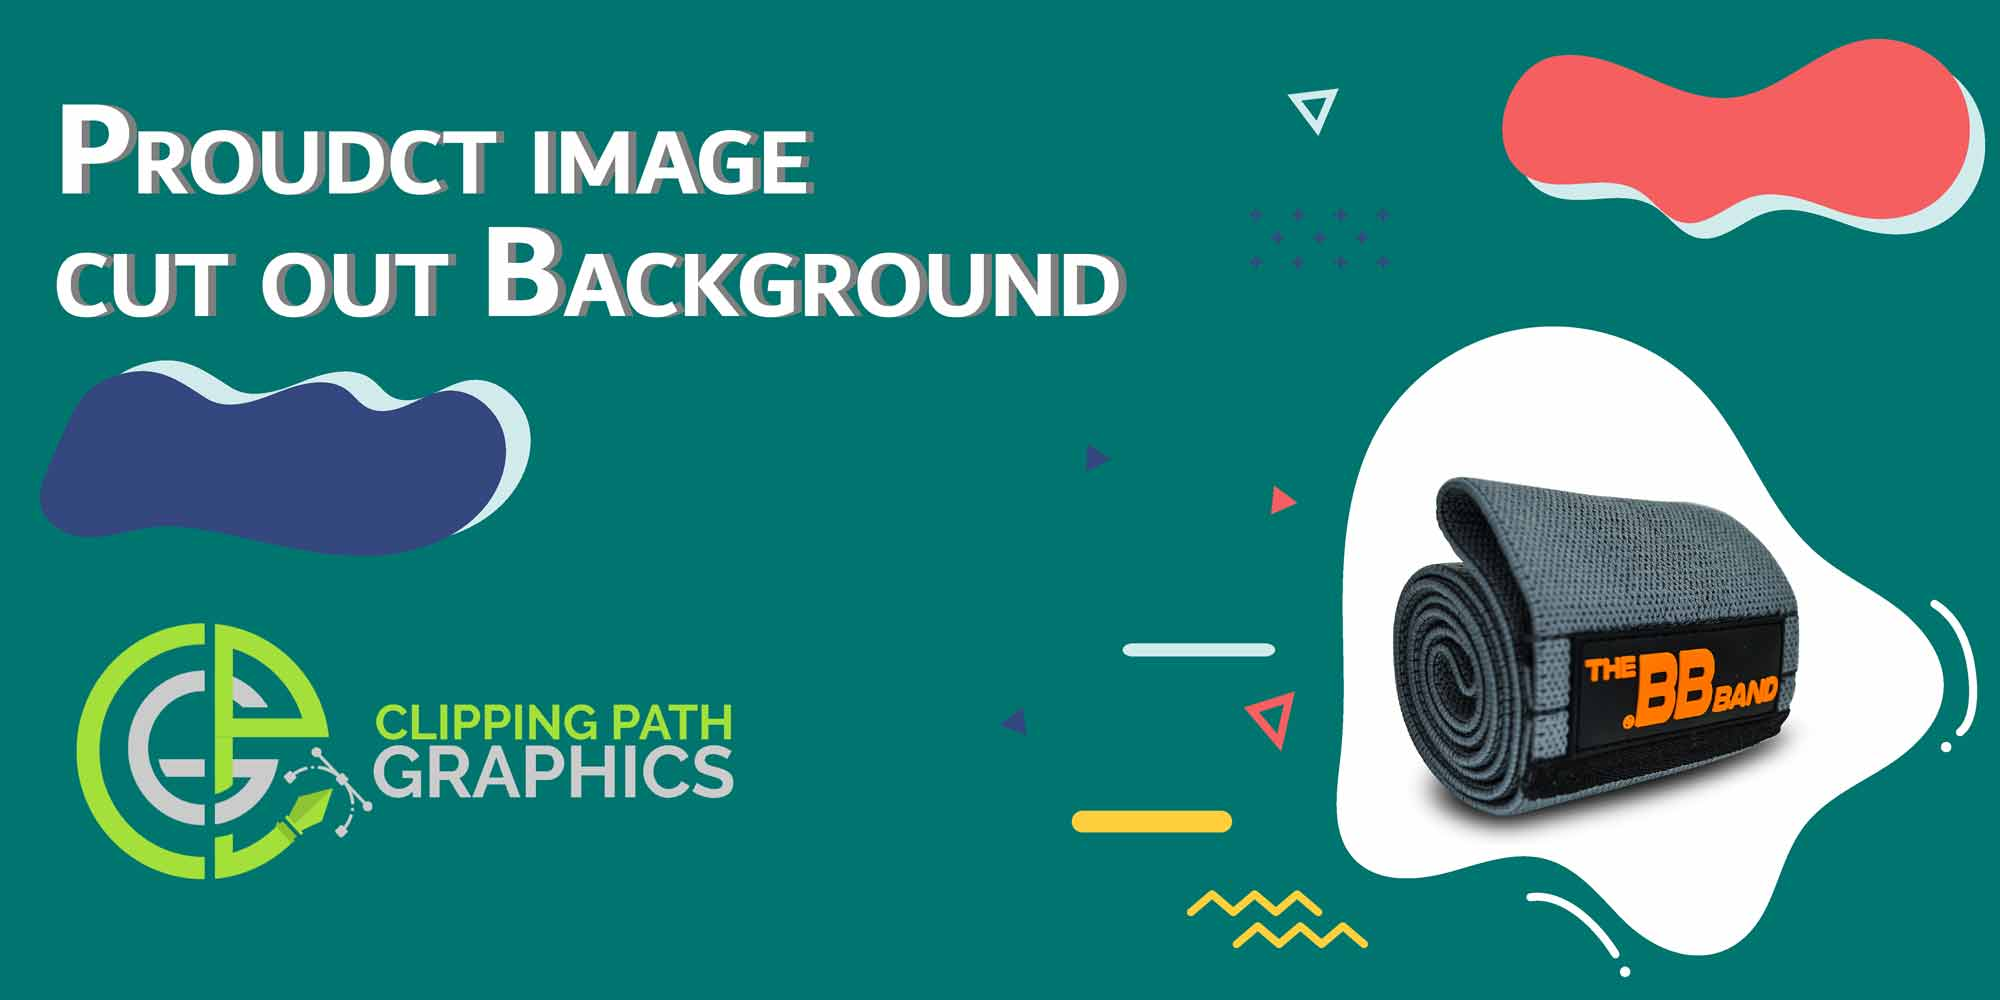 Product-image-cut-out-background-01